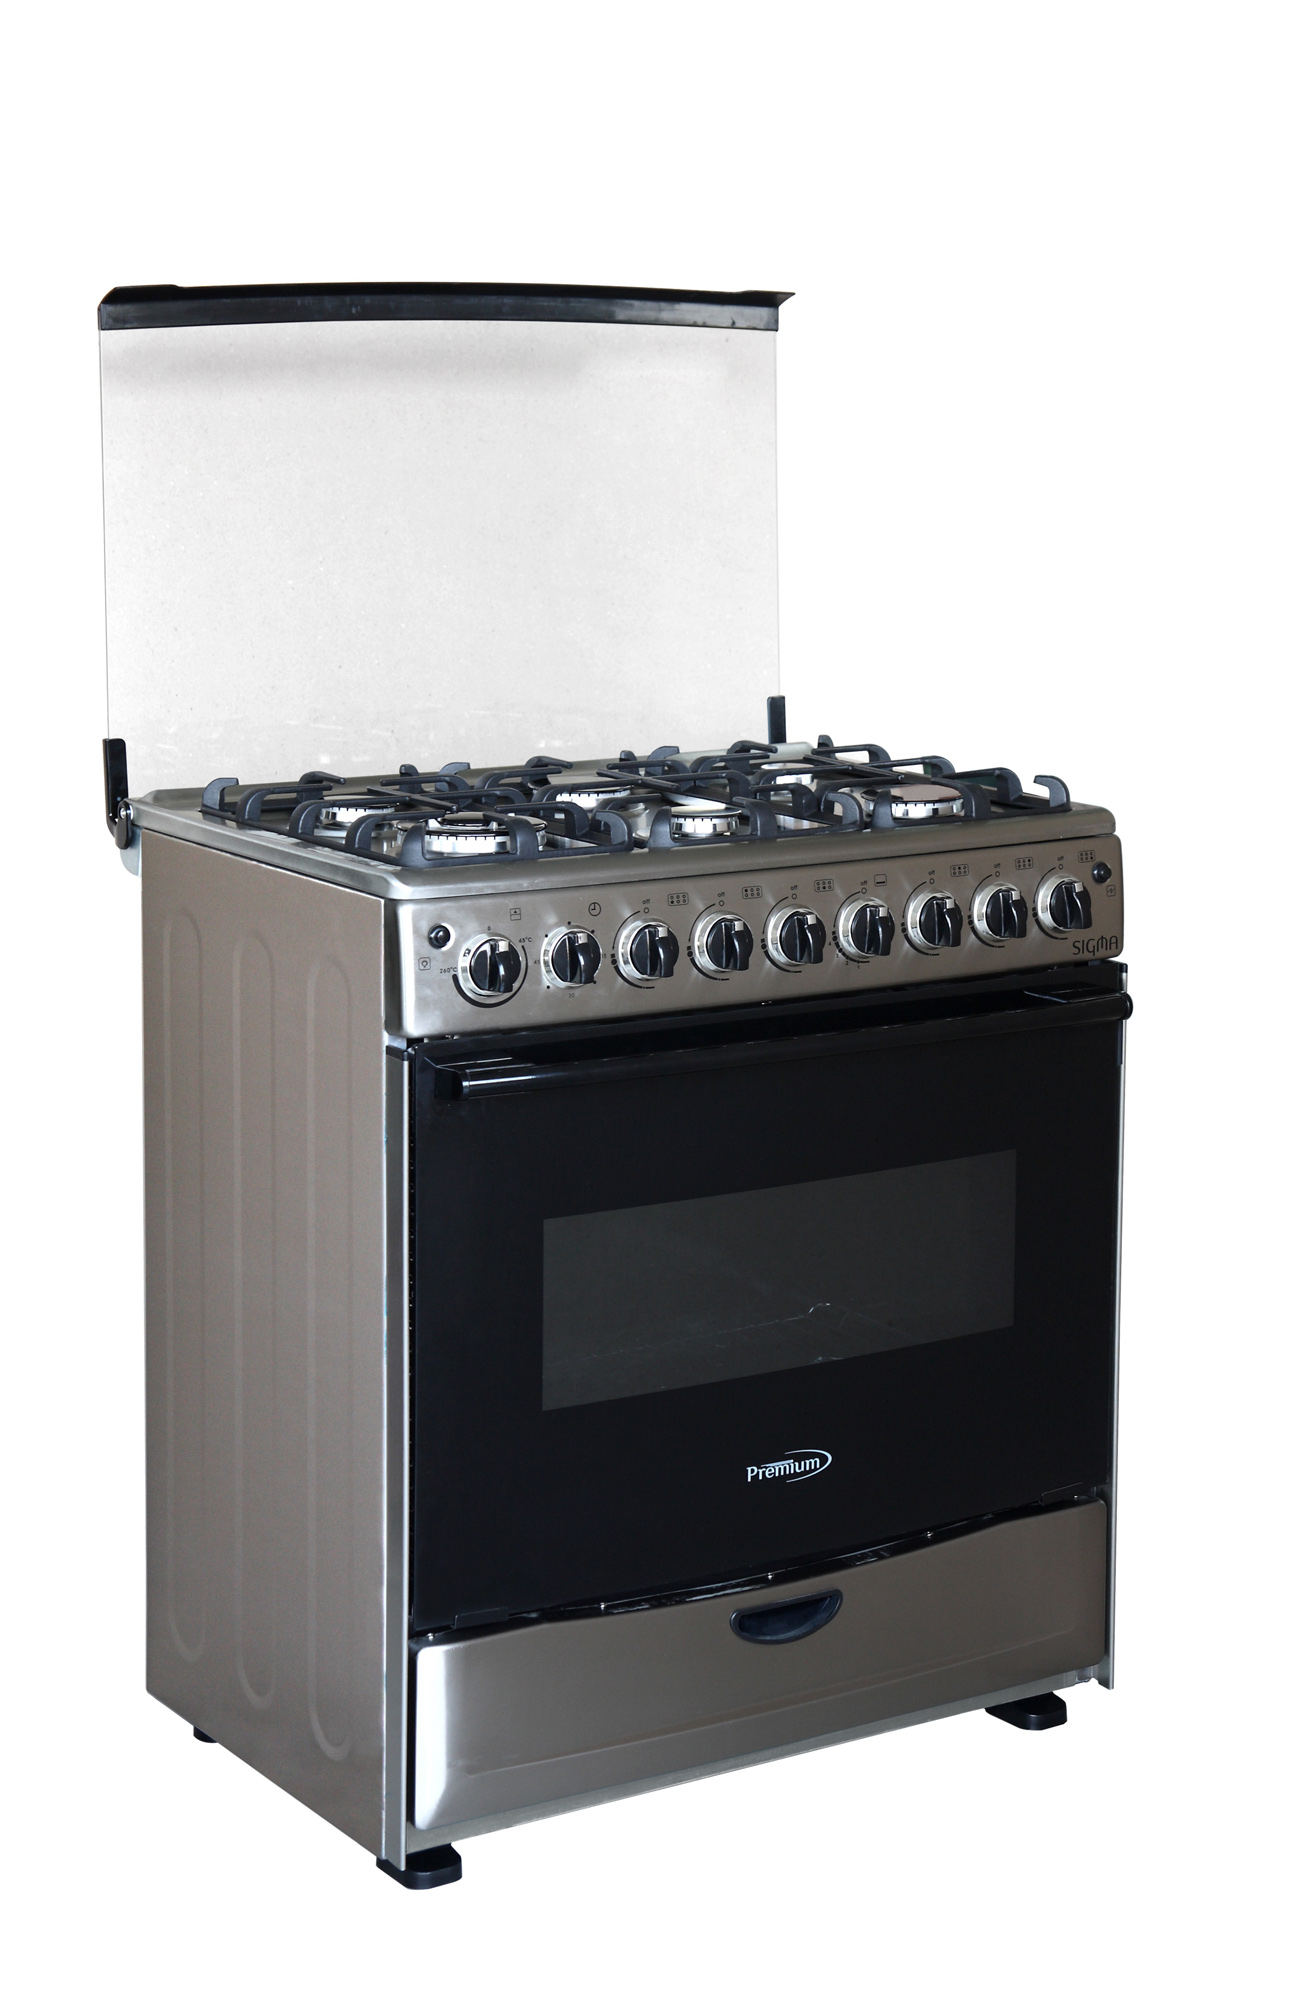 Premium Appliances 6 Burner Gas Stove